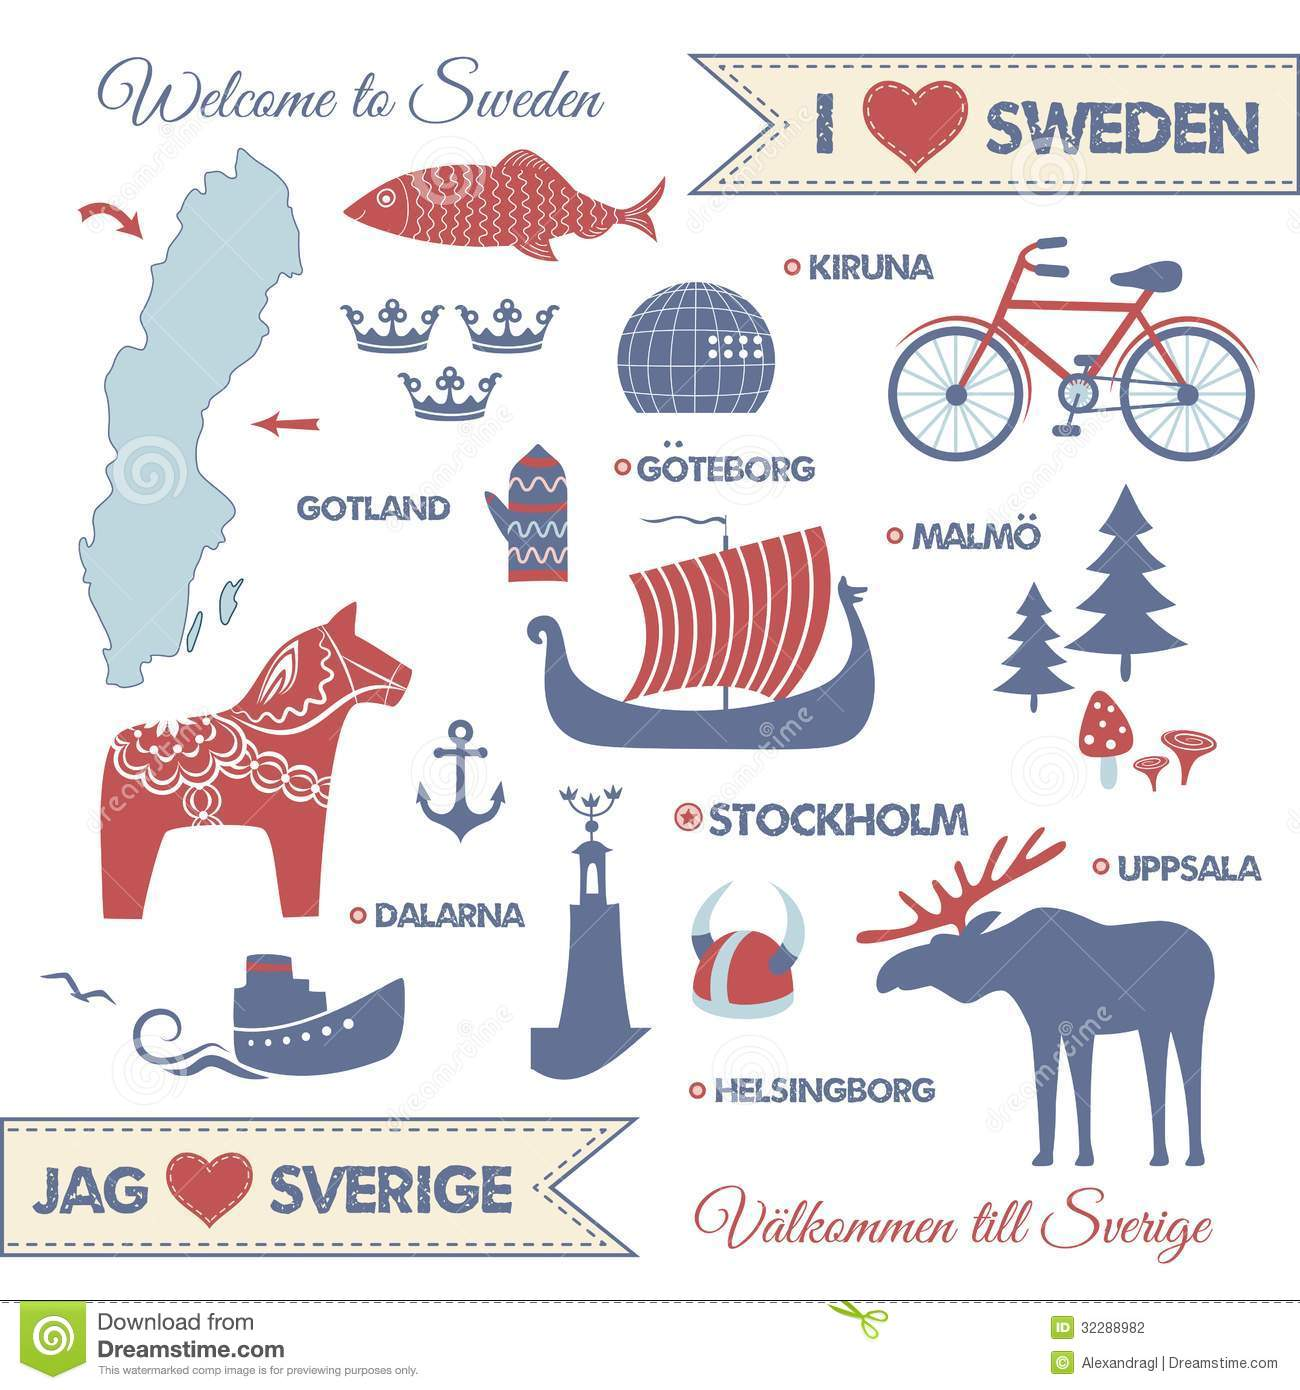 Swedish Symbols And Their Meanings